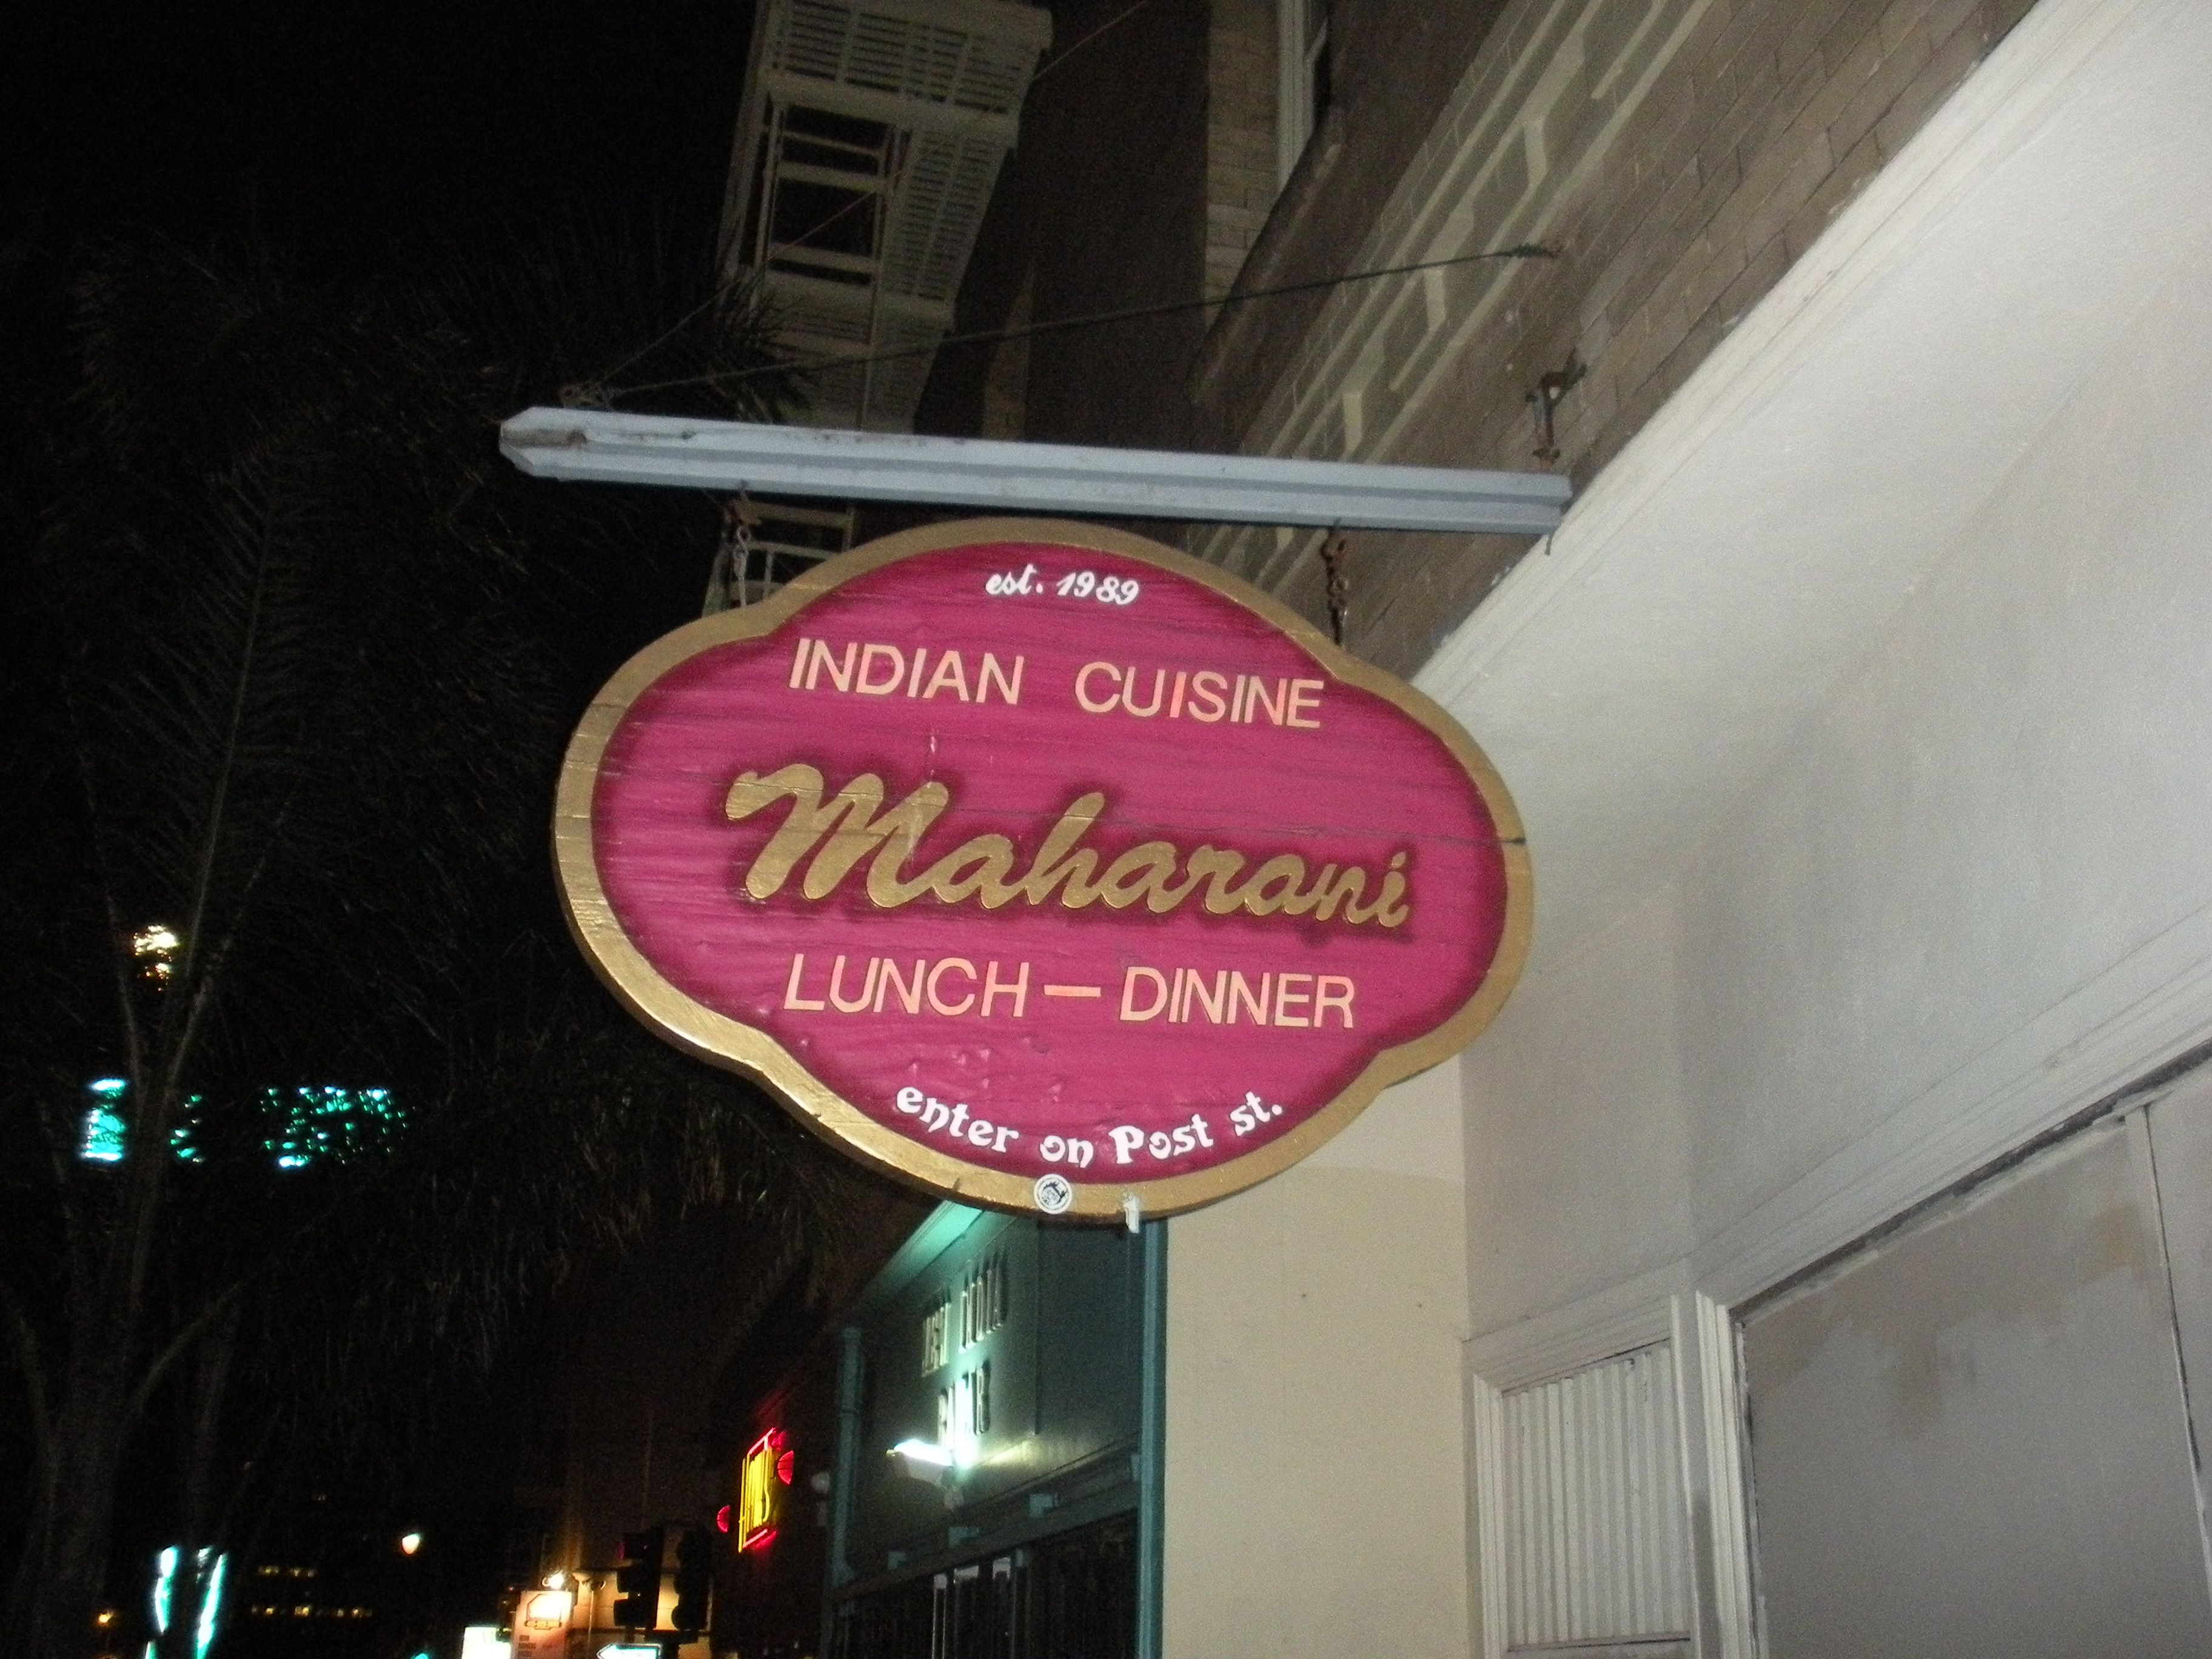 Maharani's Indian Cuisine in SFO.  I think this restaurant is on Nob Hill, but I'm not sure.  It's the second best Indian food I've had.  The best was homemade by Rupa's mom.  Second best I'll give to Maharani's.  When you walk in to the restaurant there is an explosion of hearts.  They have hearts on the walls, floors, ceiling, etc....  It's exciting and so lovely.